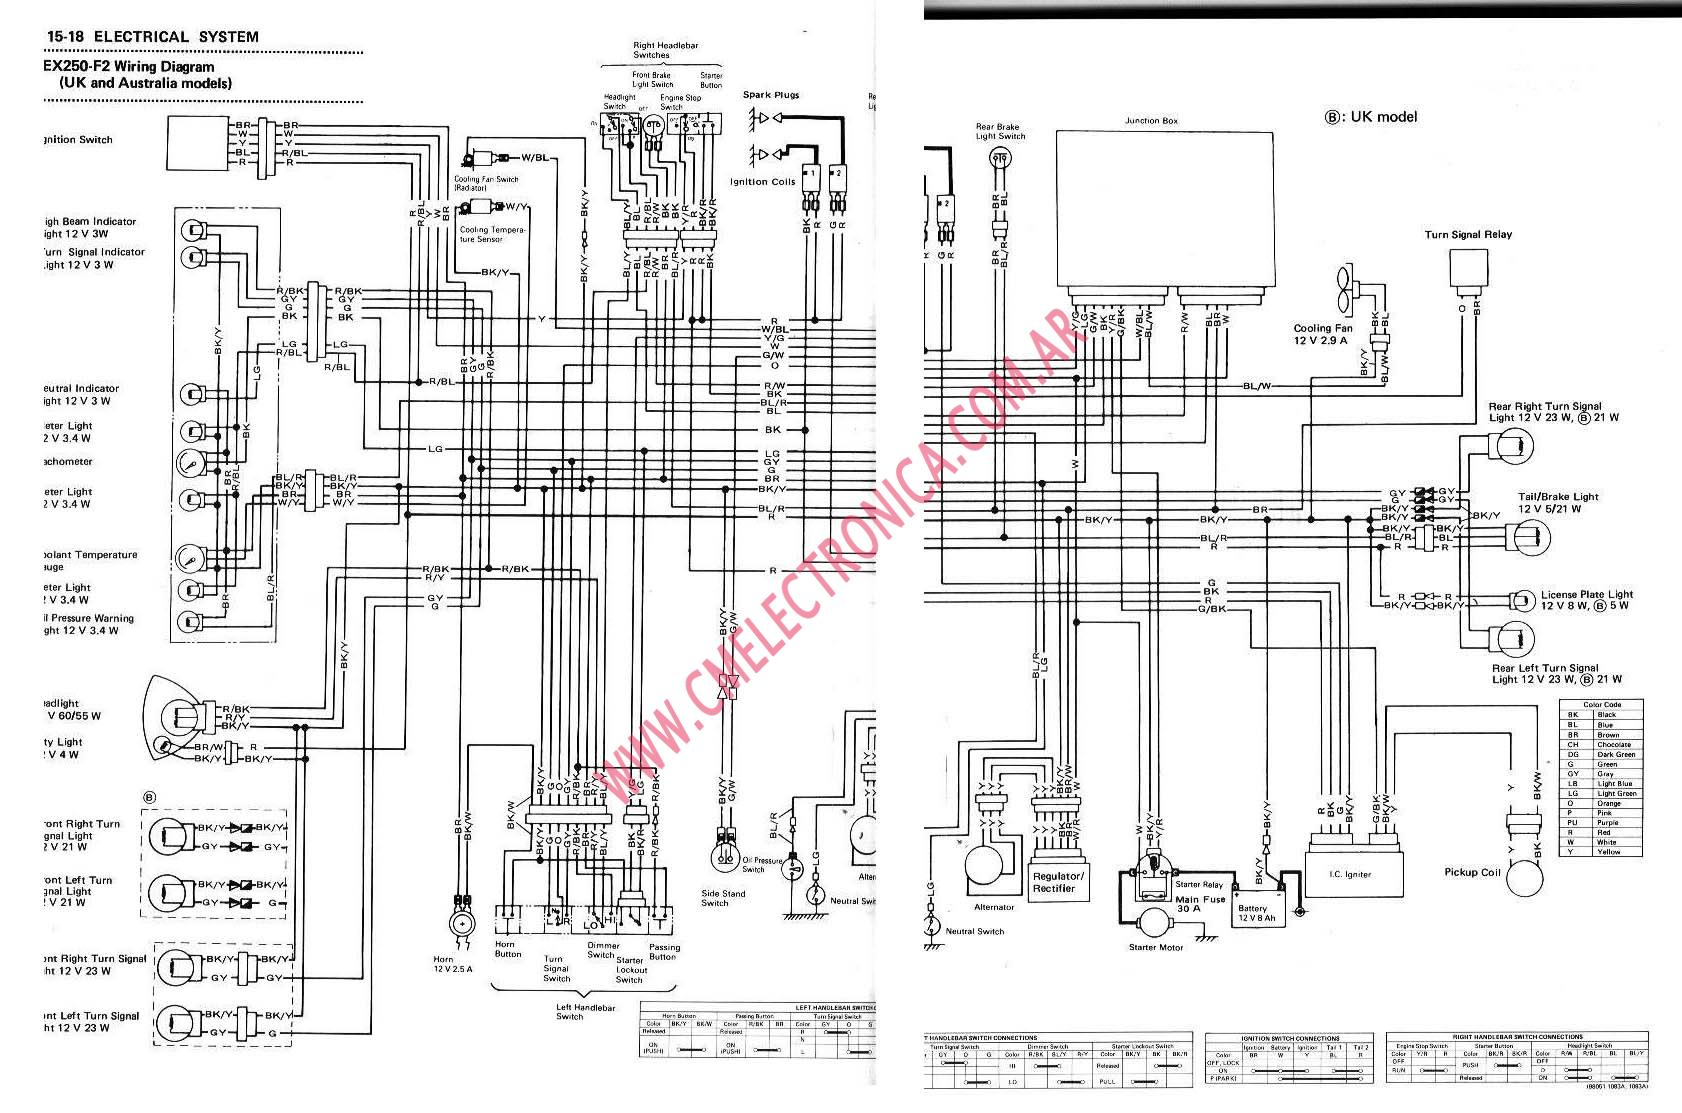 99 Tahoe Fuse Box Inside Auto Electrical Wiring Diagram Venture Jaguar Xj8